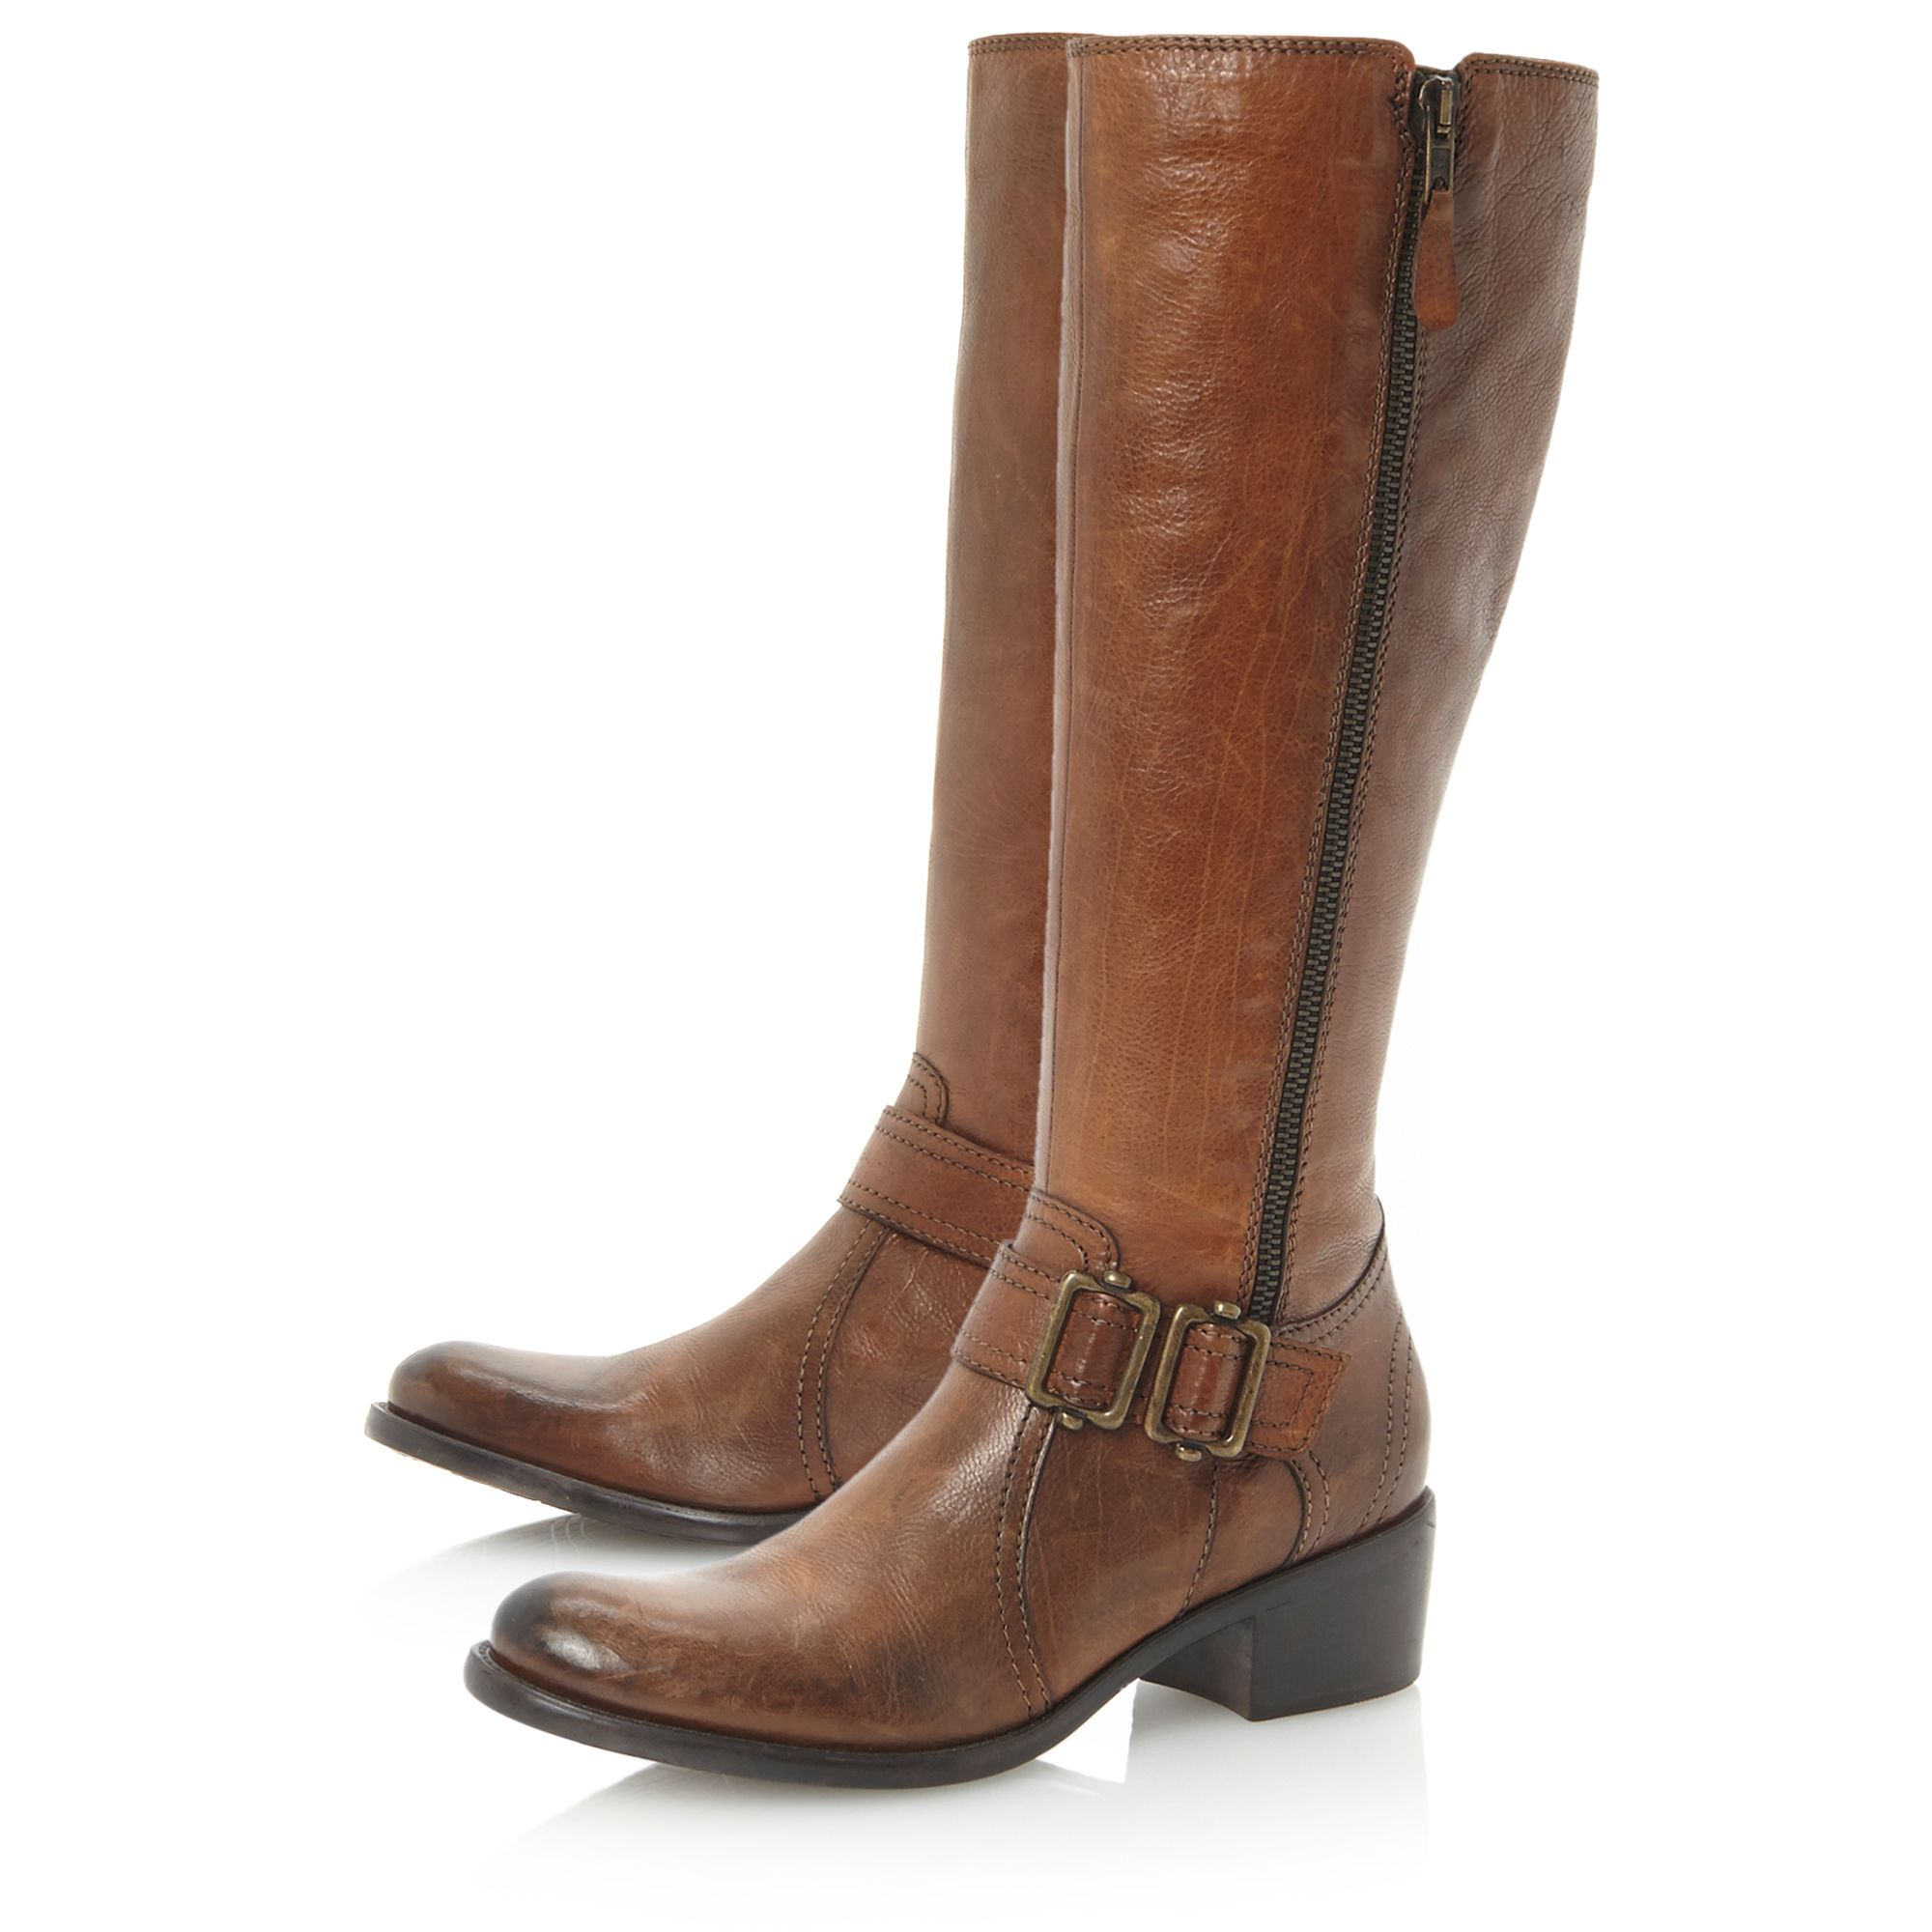 Tatagonia-side zip and buckle detail boots